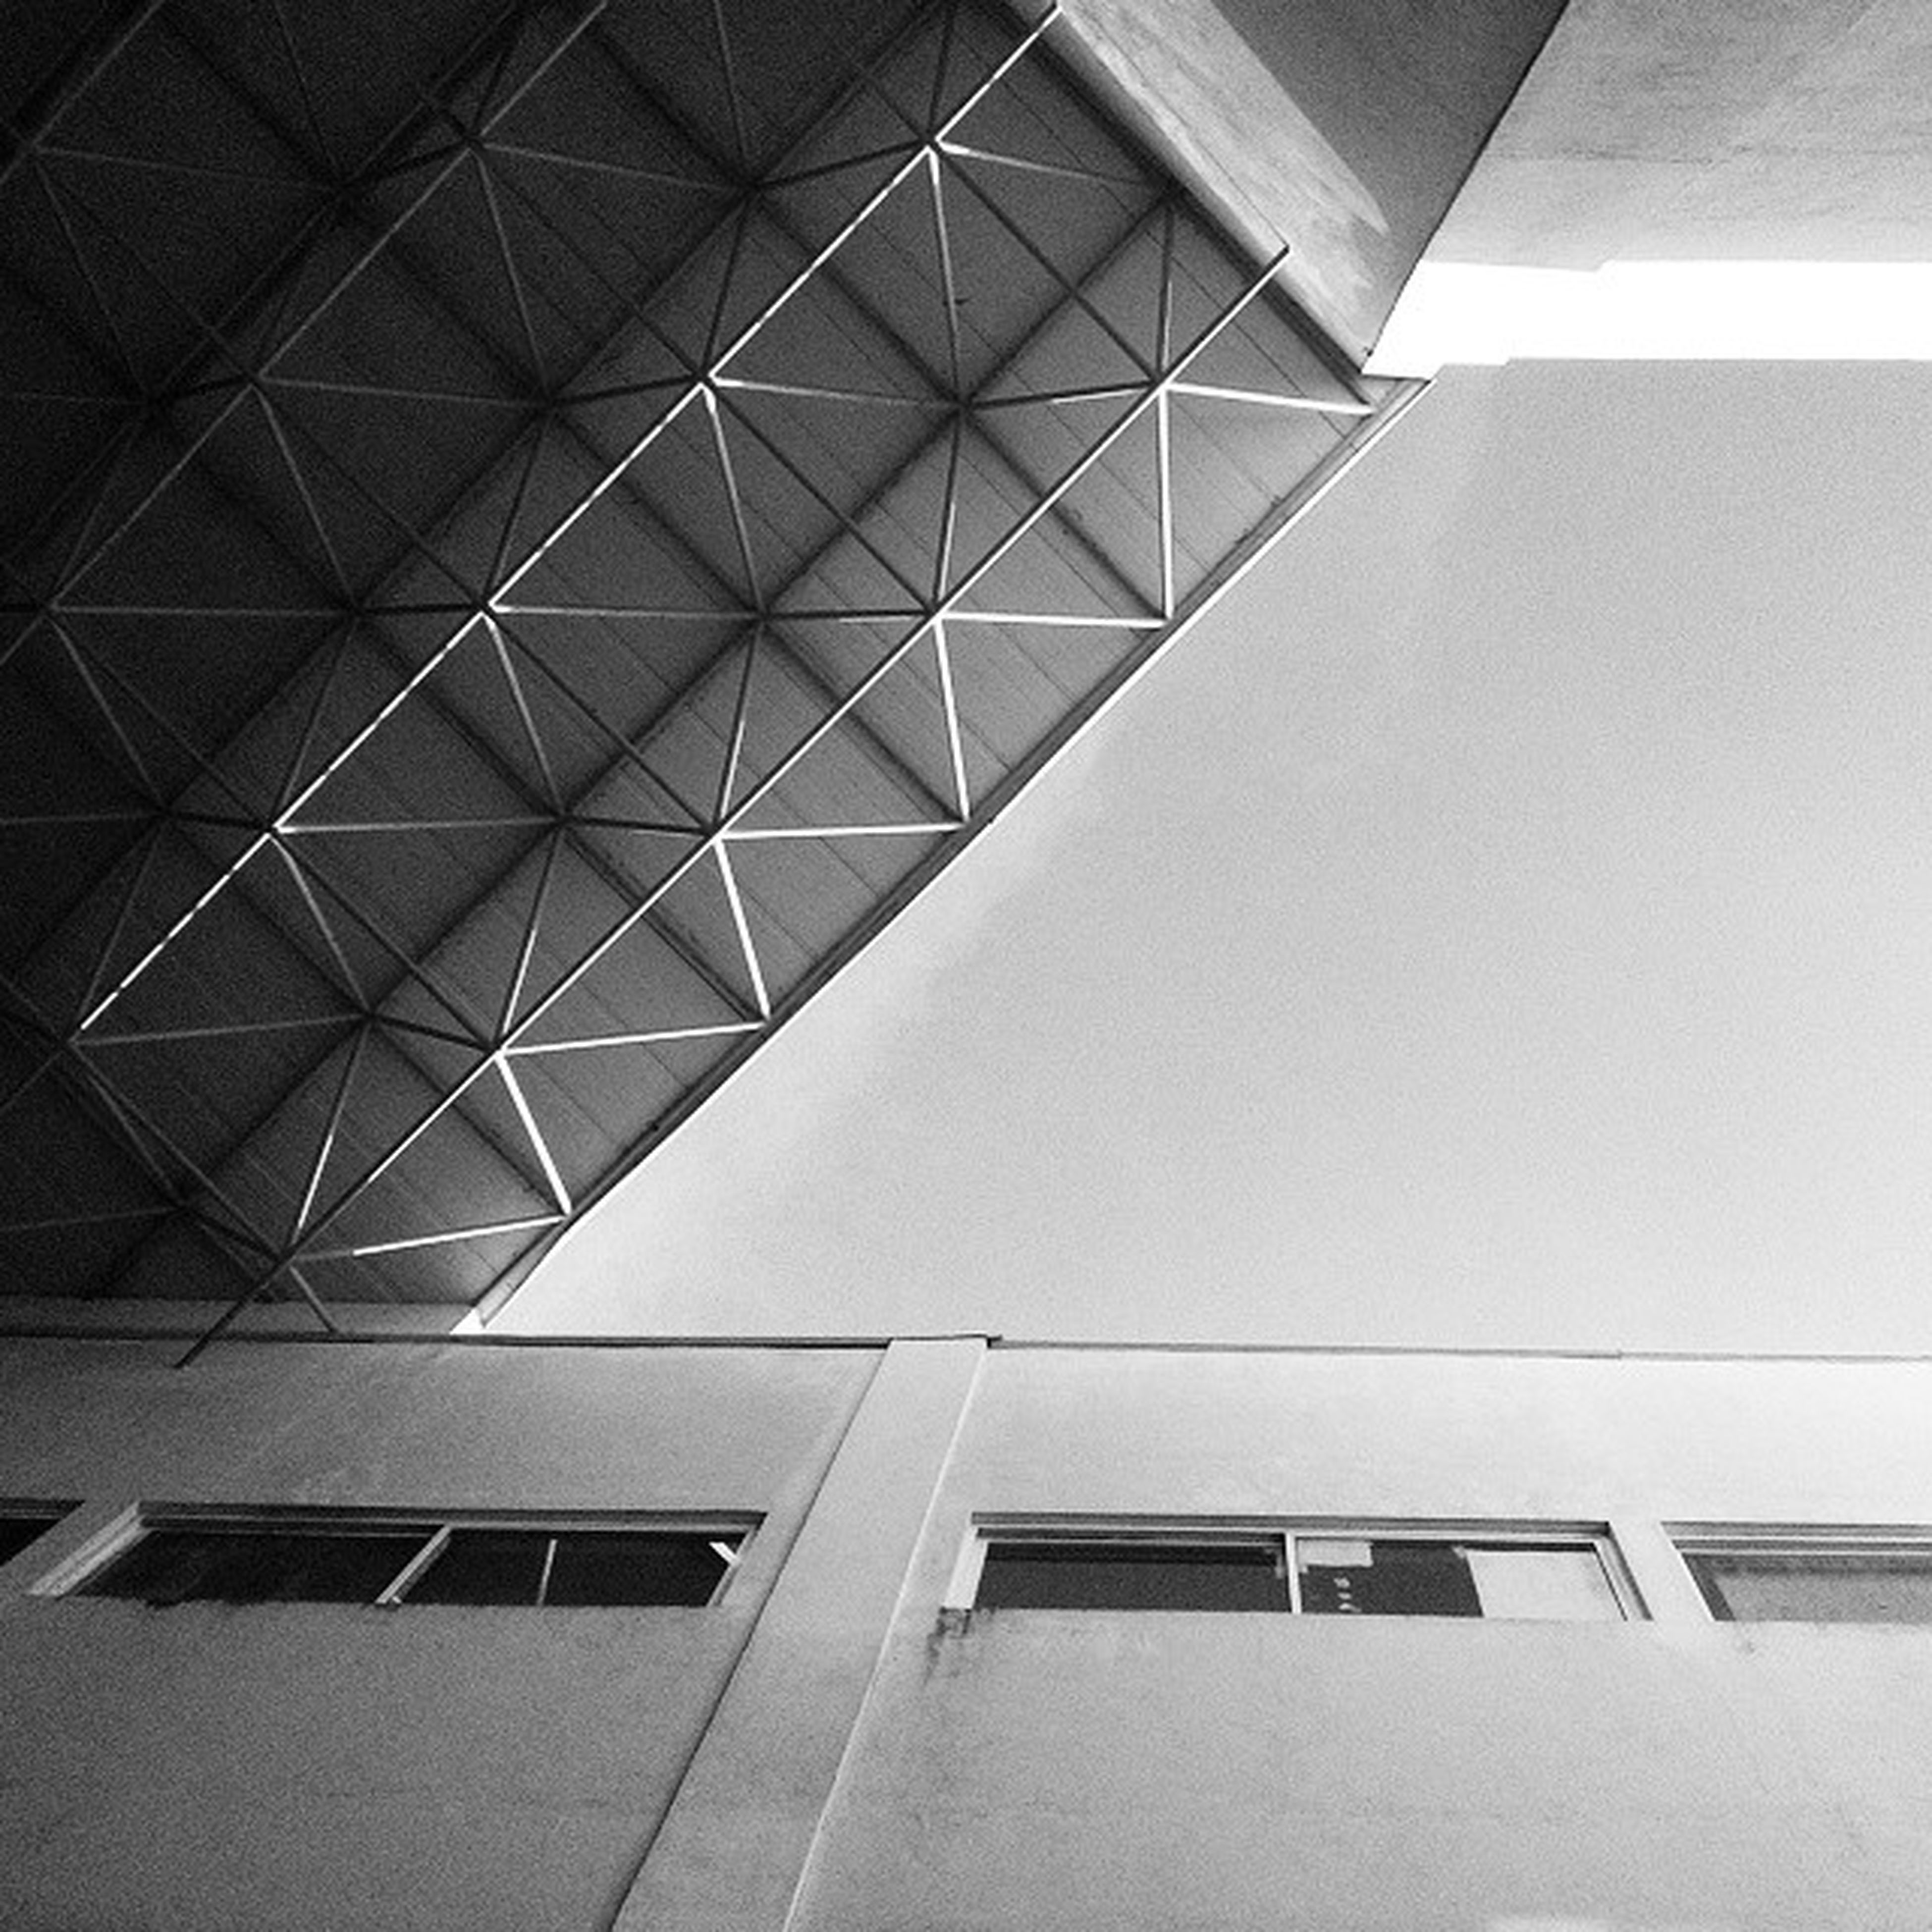 architecture, built structure, low angle view, building exterior, building, modern, window, architectural feature, city, office building, glass - material, ceiling, directly below, pattern, no people, geometric shape, day, indoors, tall - high